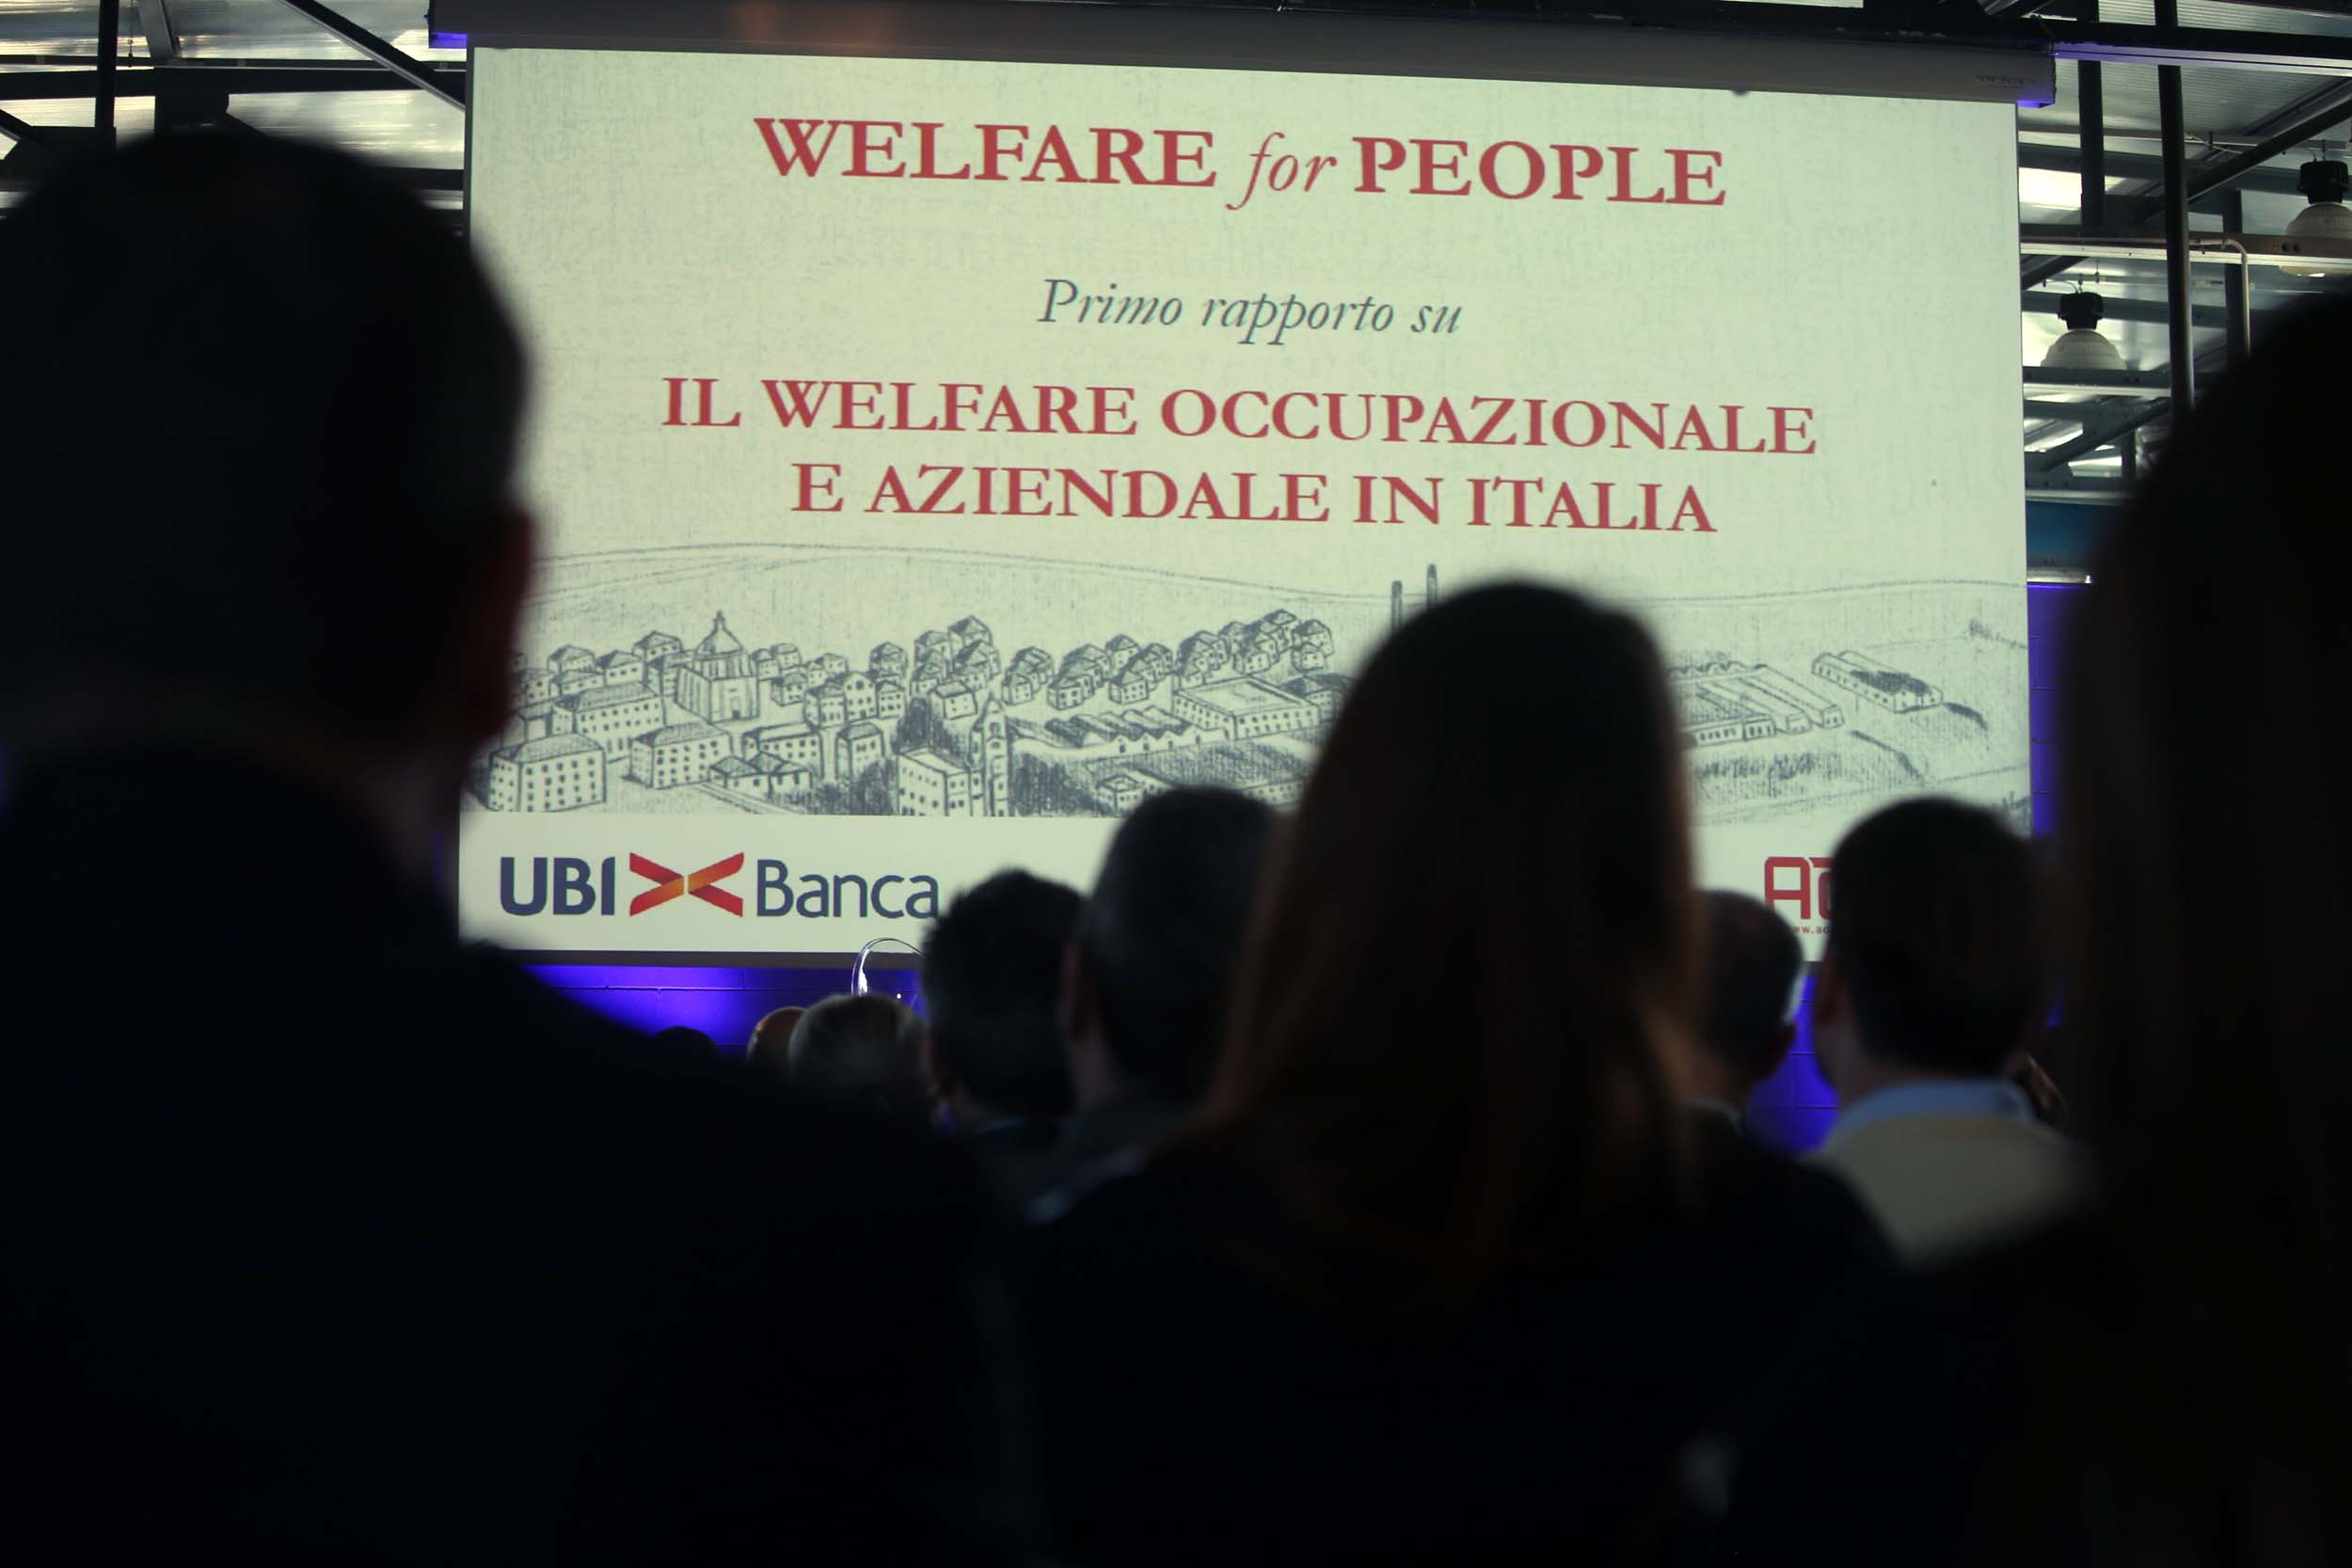 UBI Banca e ADAPT insieme per Welfare for People